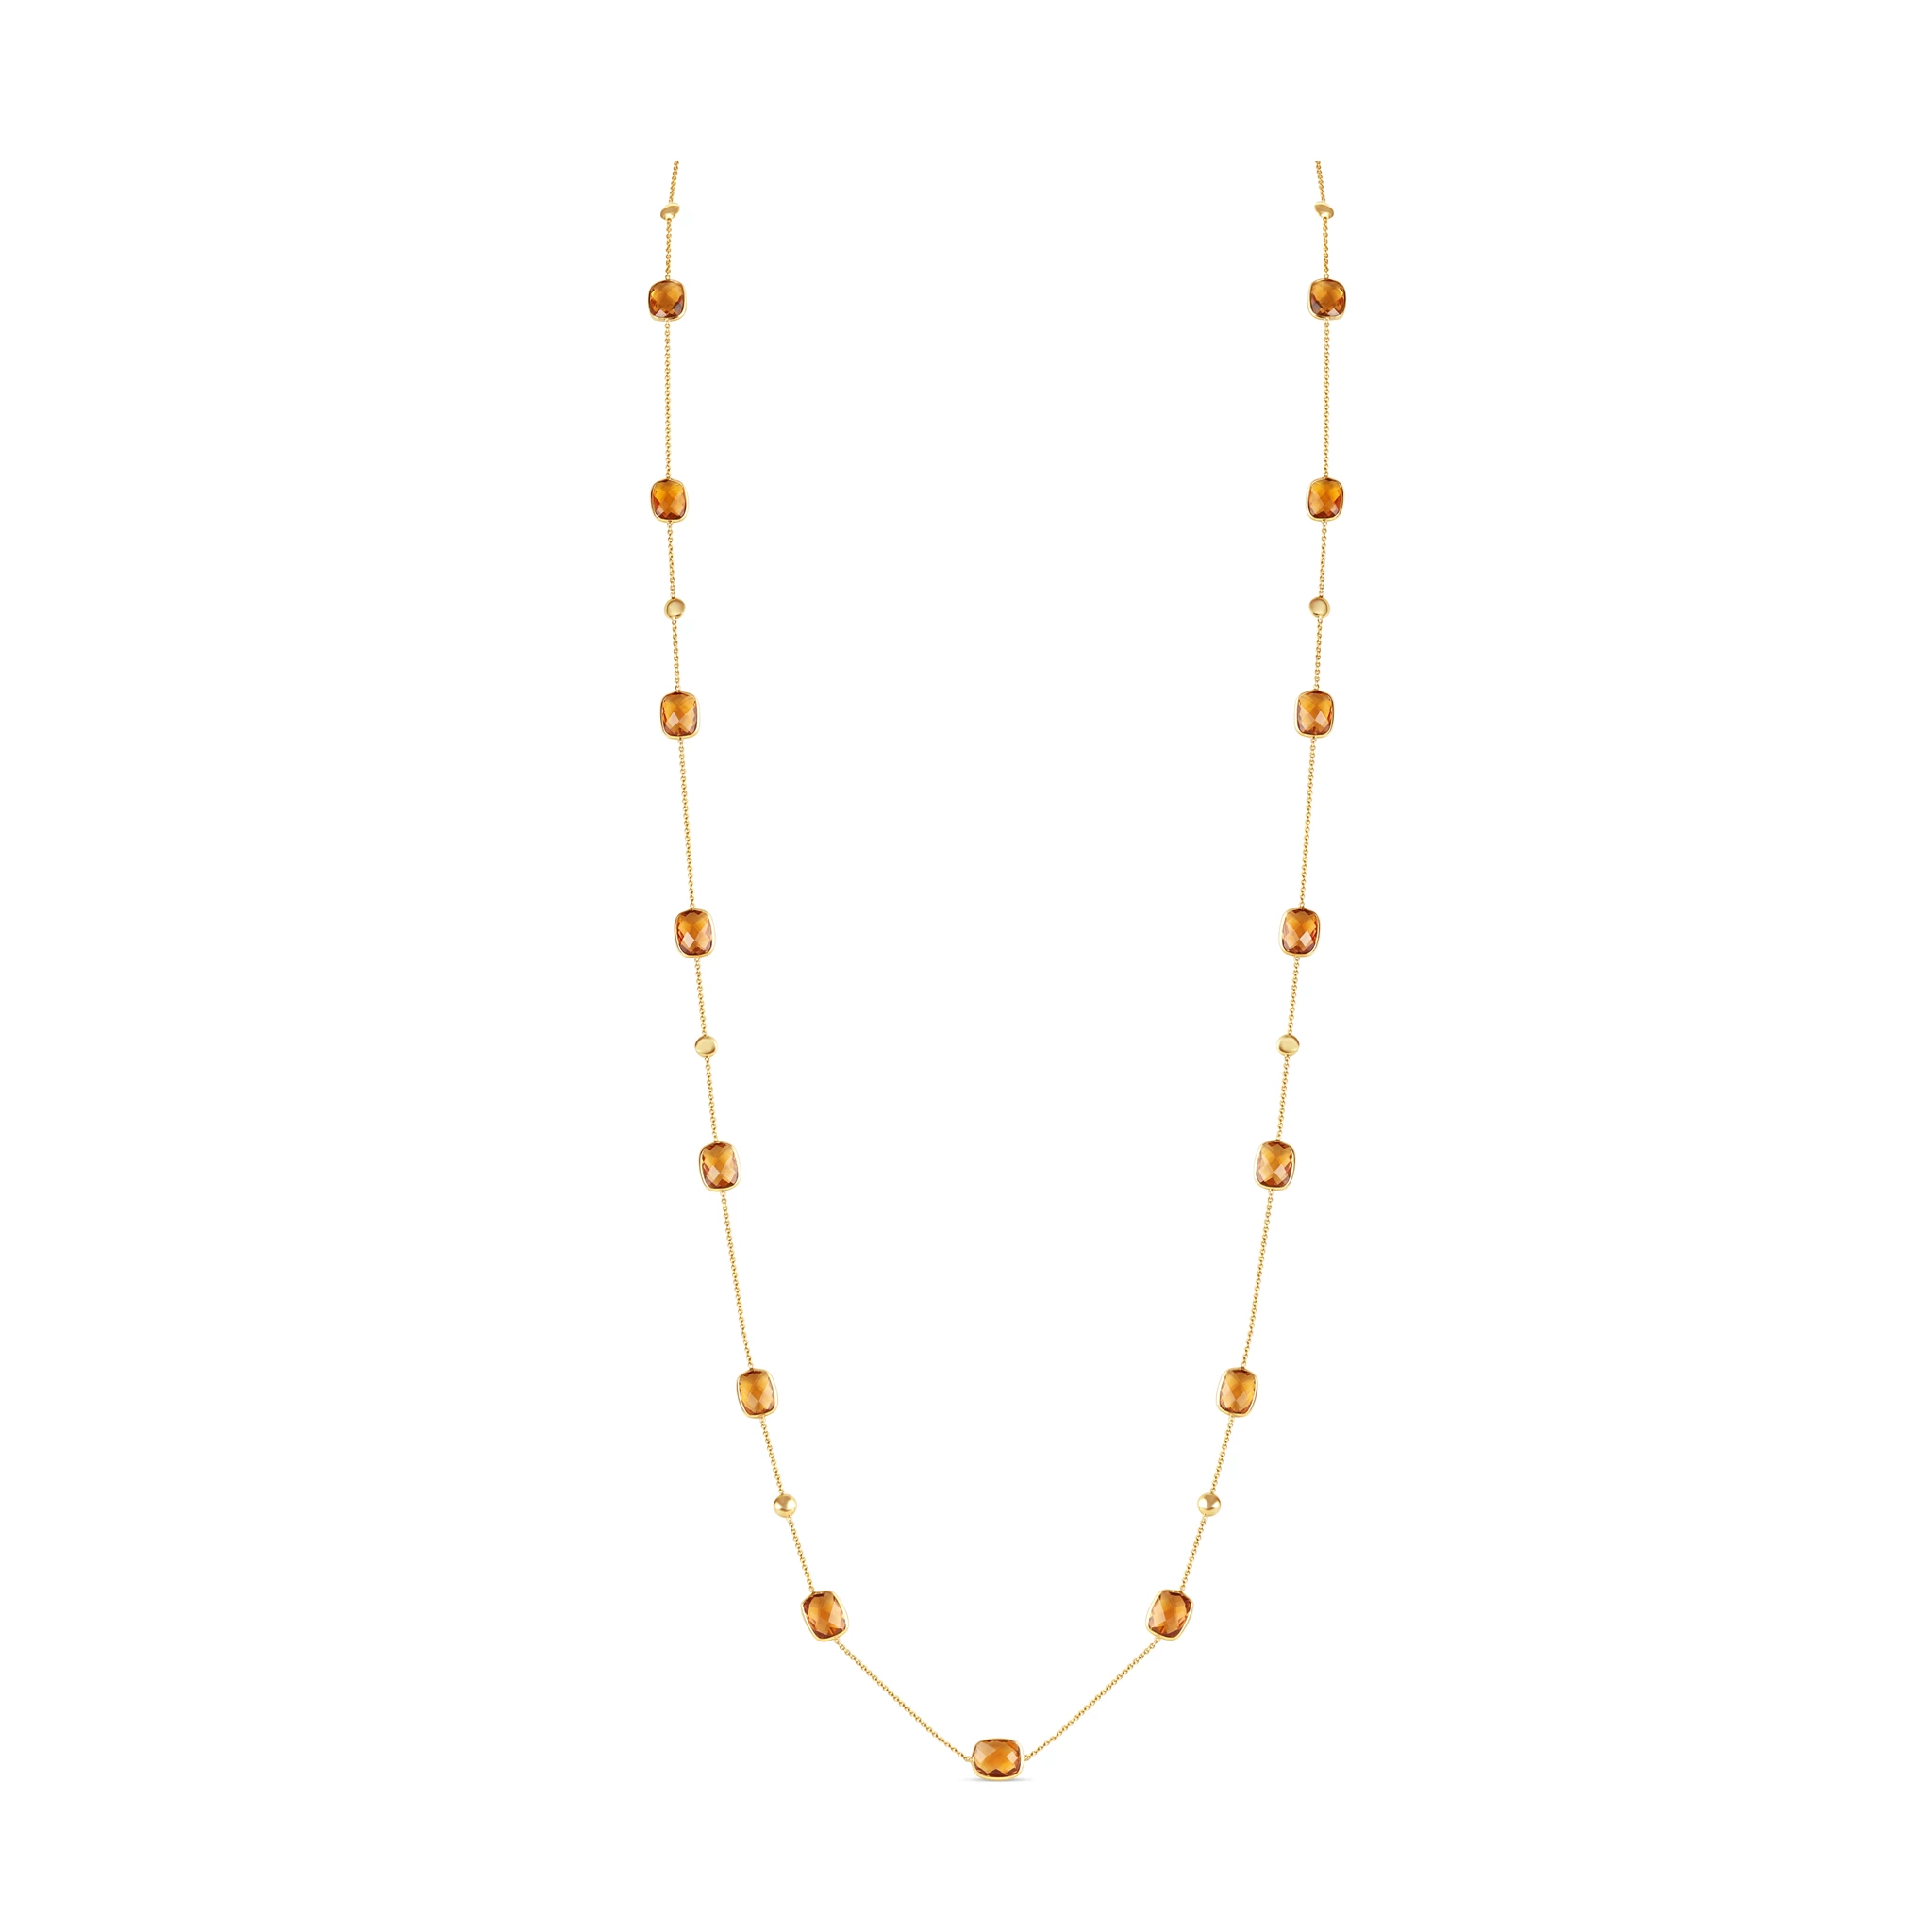 Multicolor Stones Long Necklace in 18K Yellow Gold